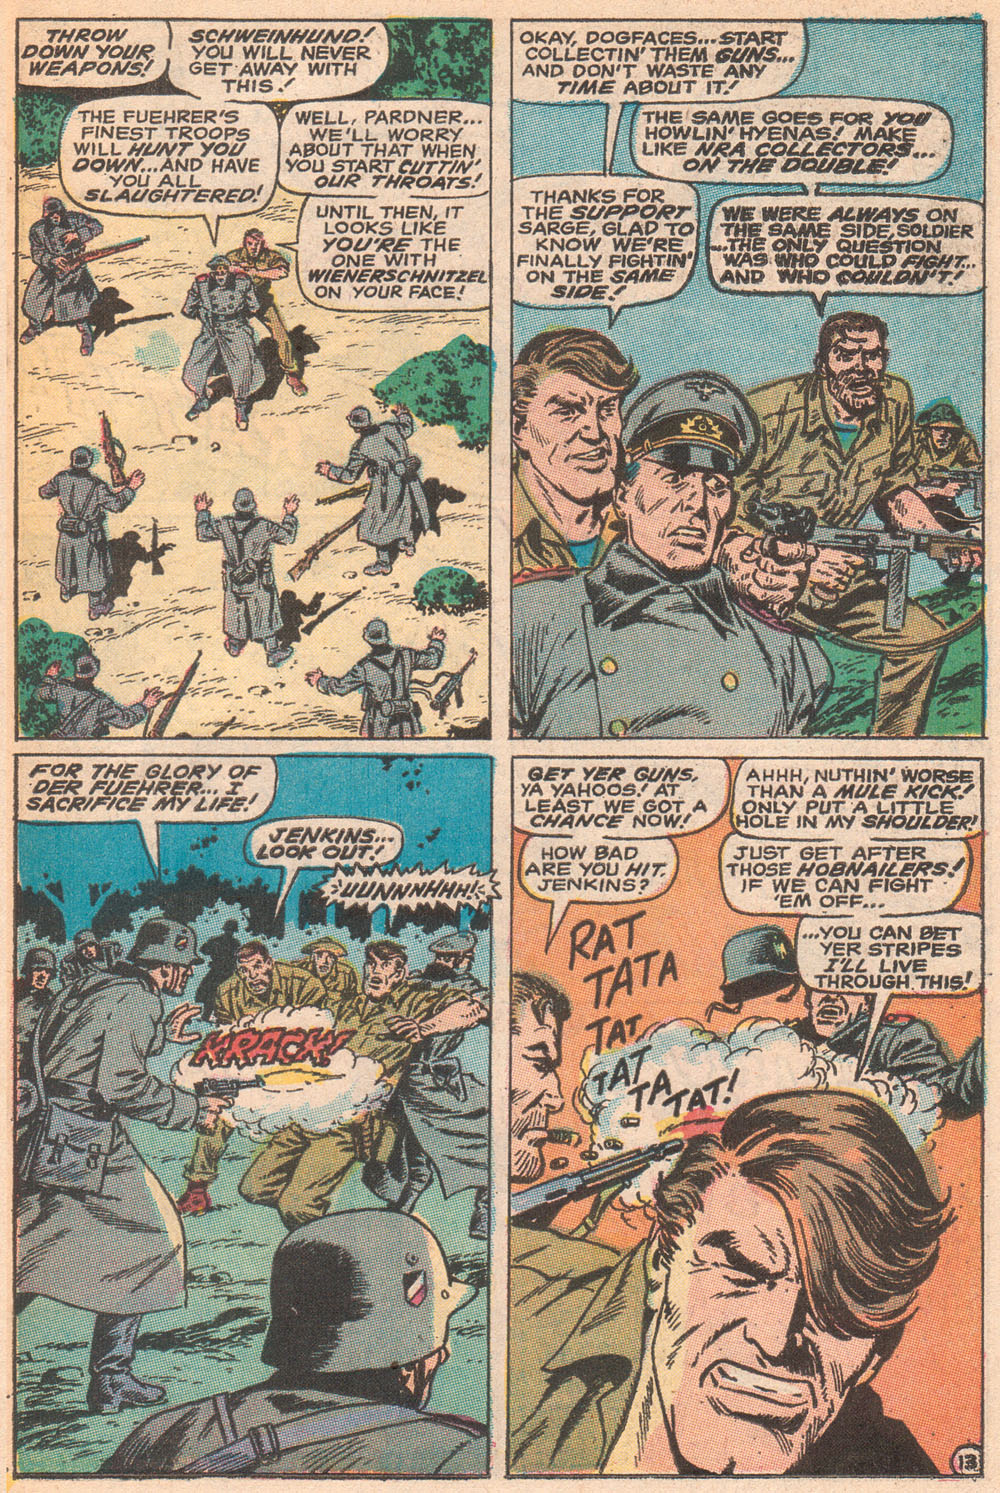 Read online Sgt. Fury comic -  Issue #70 - 19